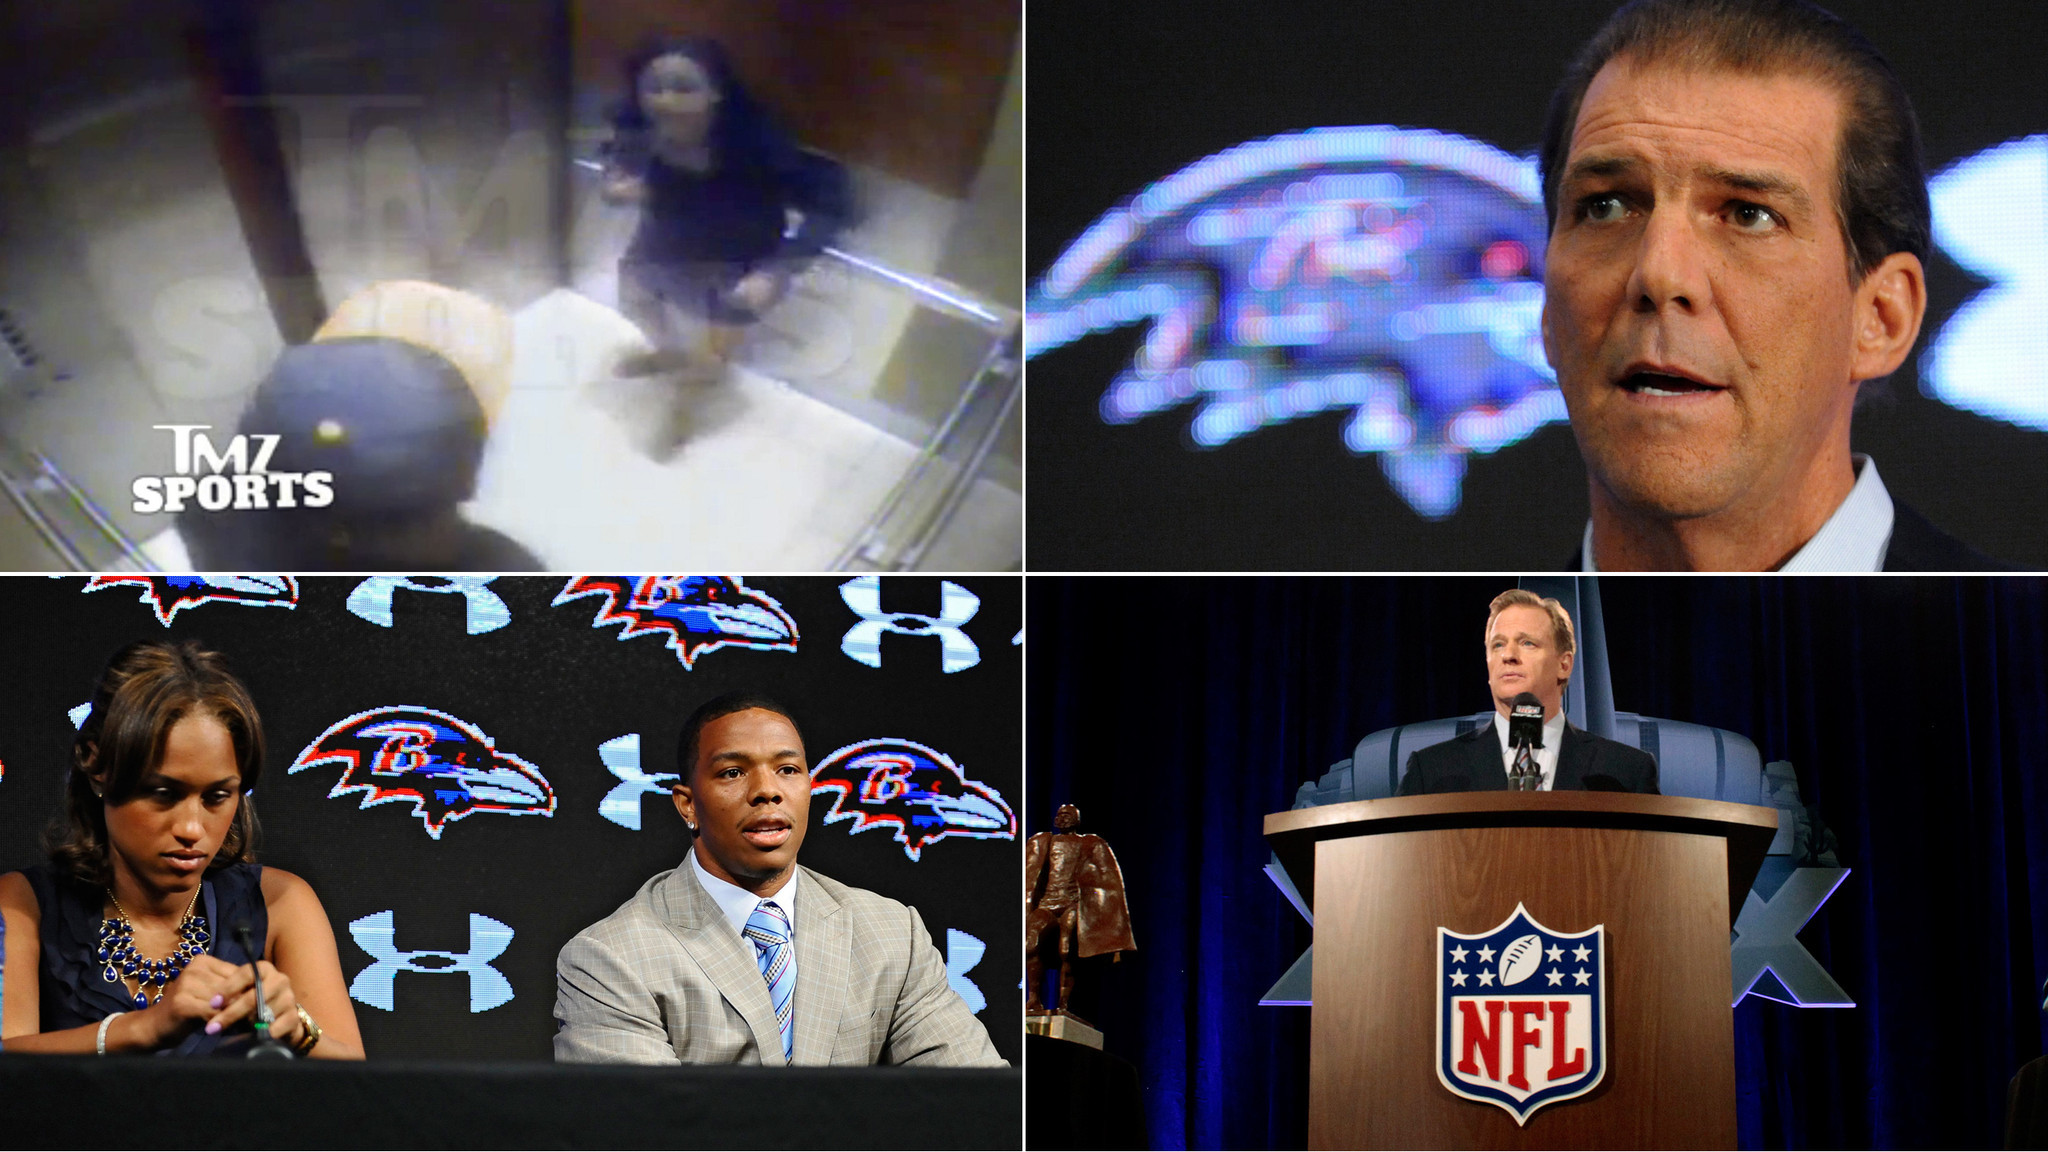 domestic violence on ray rice Video of ray rice hitting a woman reveals what we too often look away from democracy dies in darkness namely: this is what domestic violence looks like.